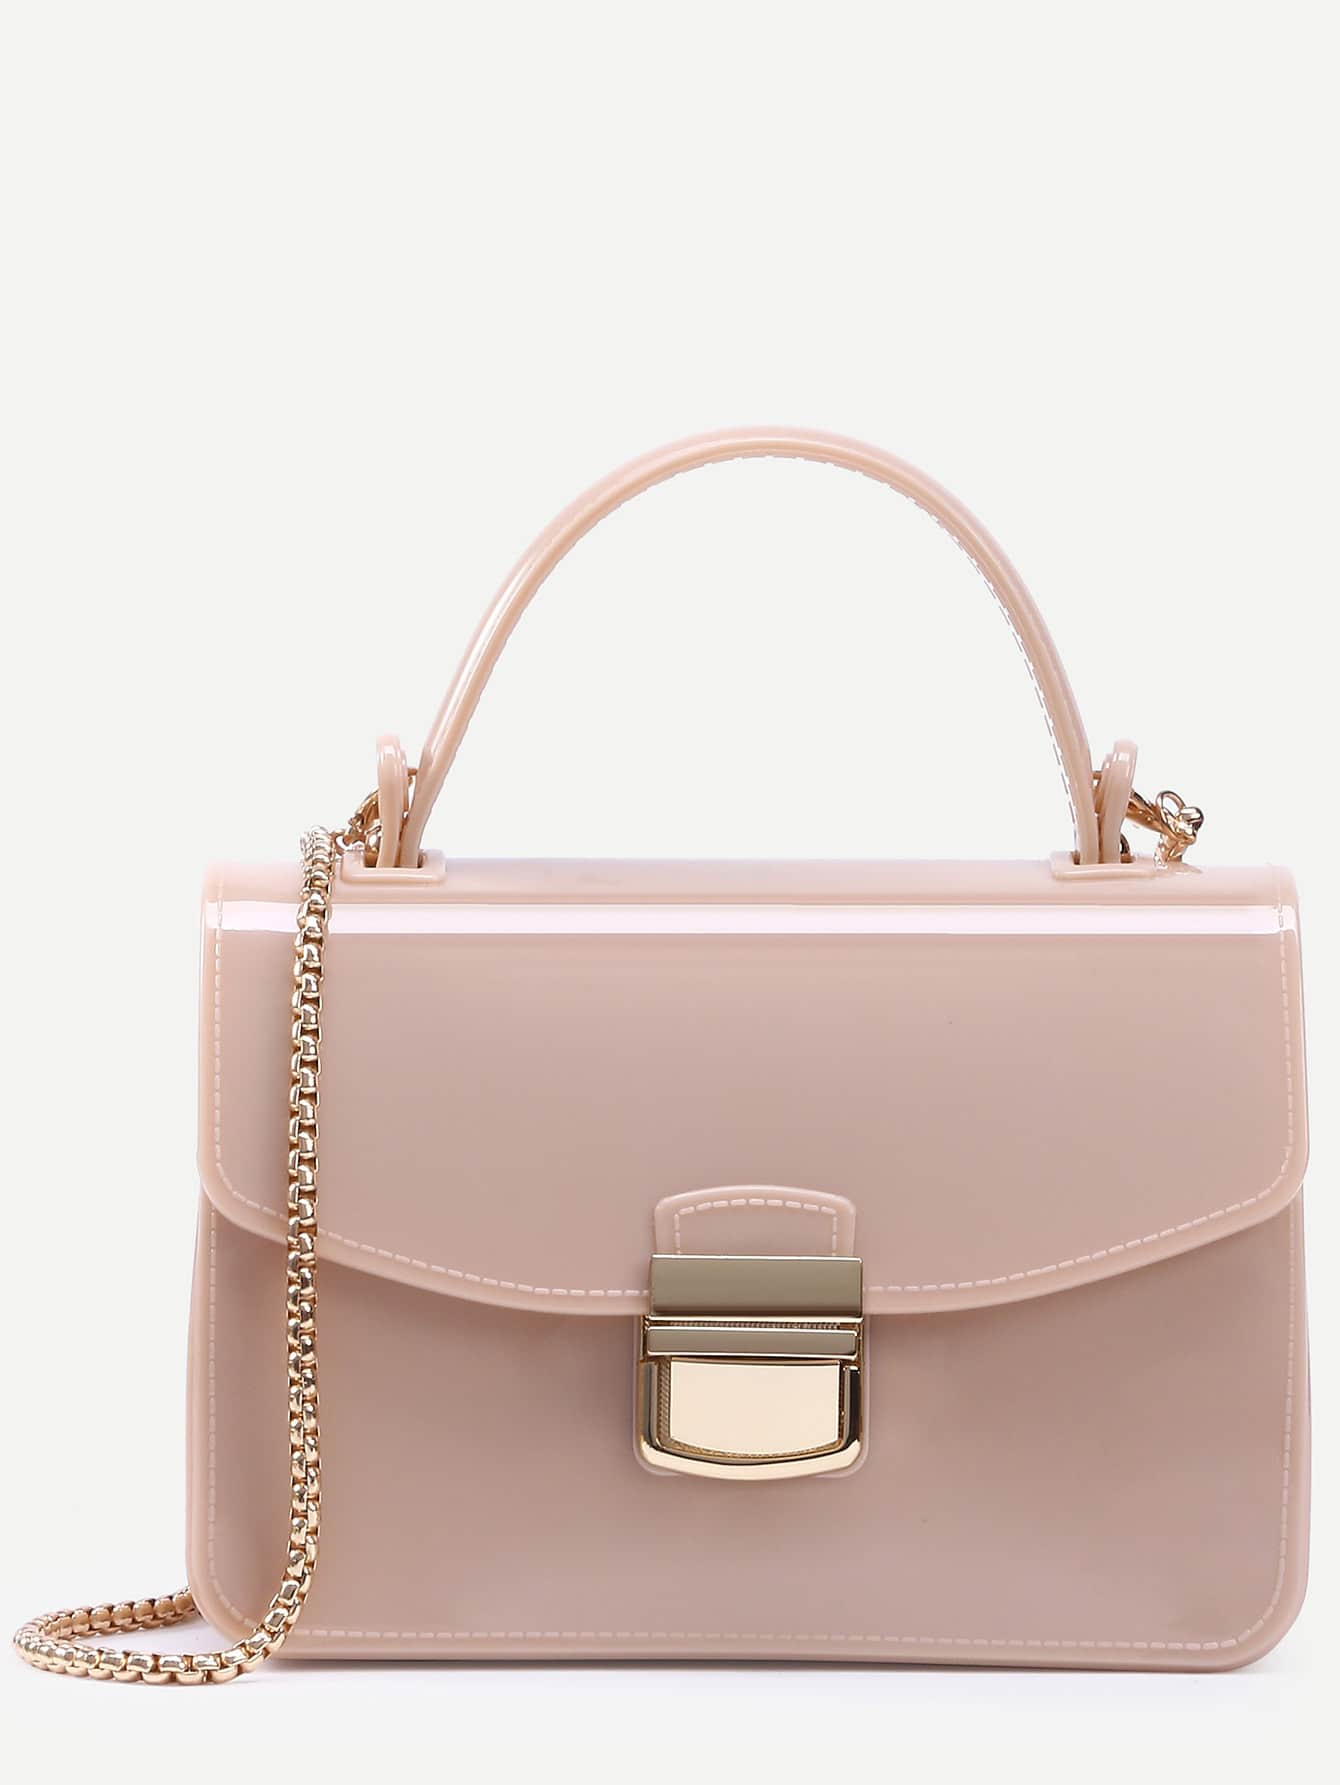 Apricot Pushlock Closure Plastic Handbag With Chain Image